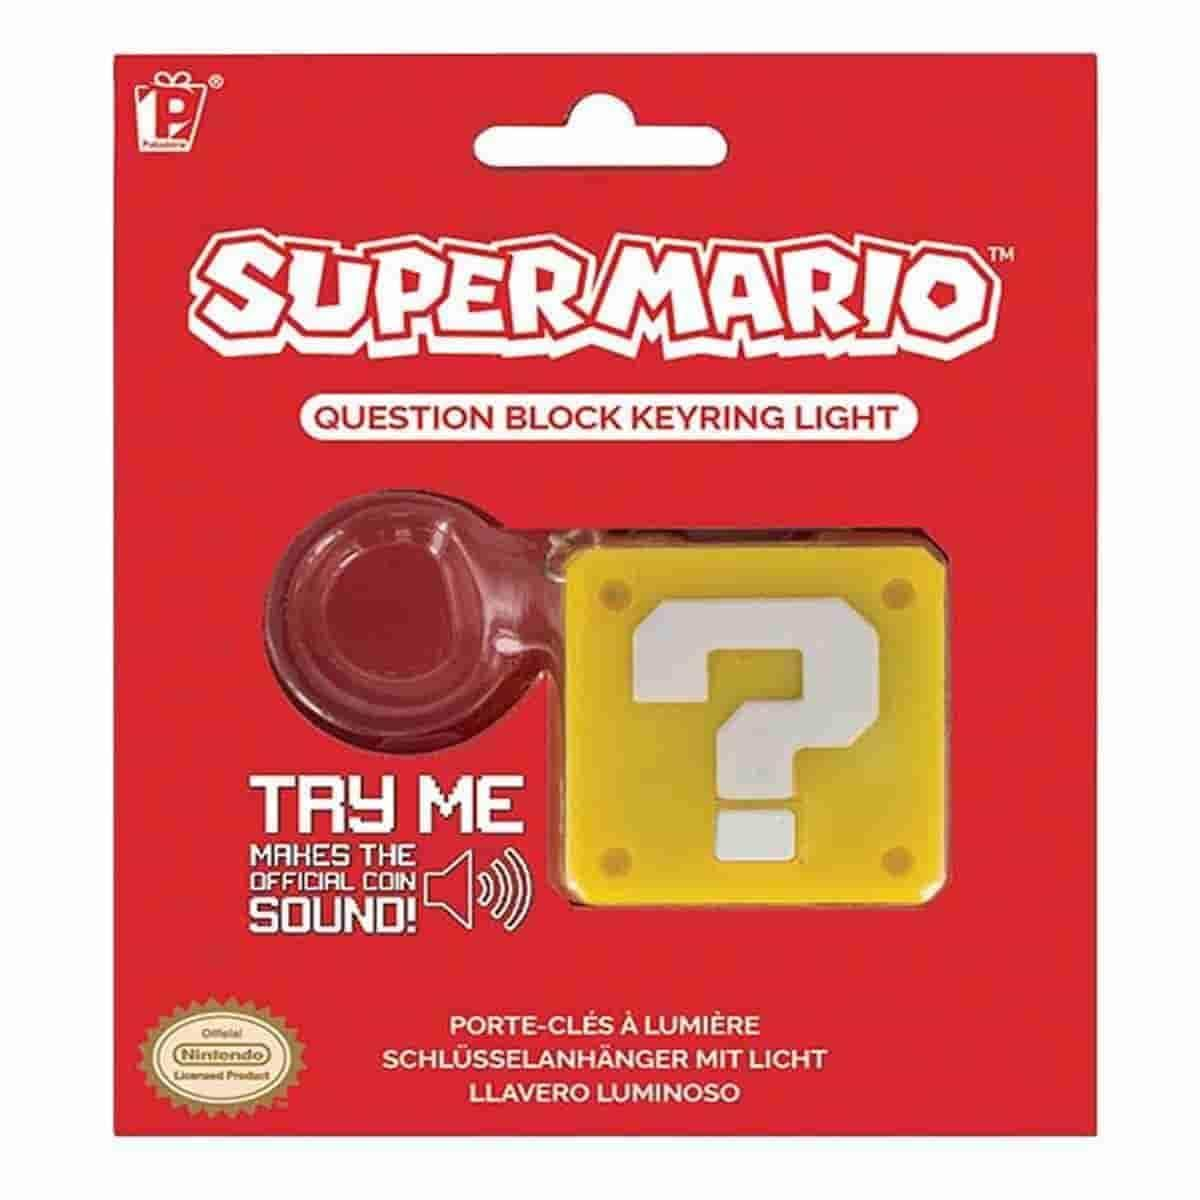 Nintendo NES Super Mario Bros. Question Block Keychain - IamRetro.com